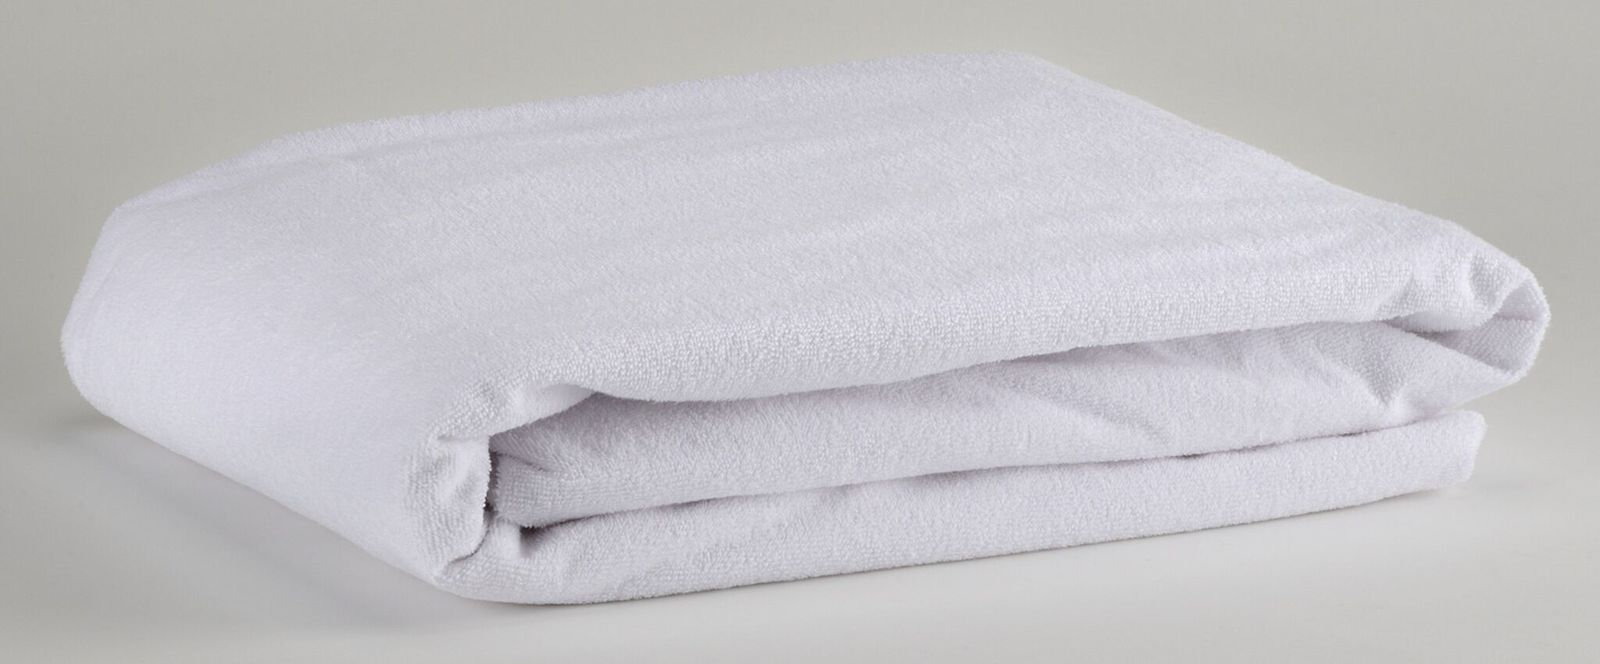 Brolly Sheets: Waterproof Towelling Mattress Protector - Double image